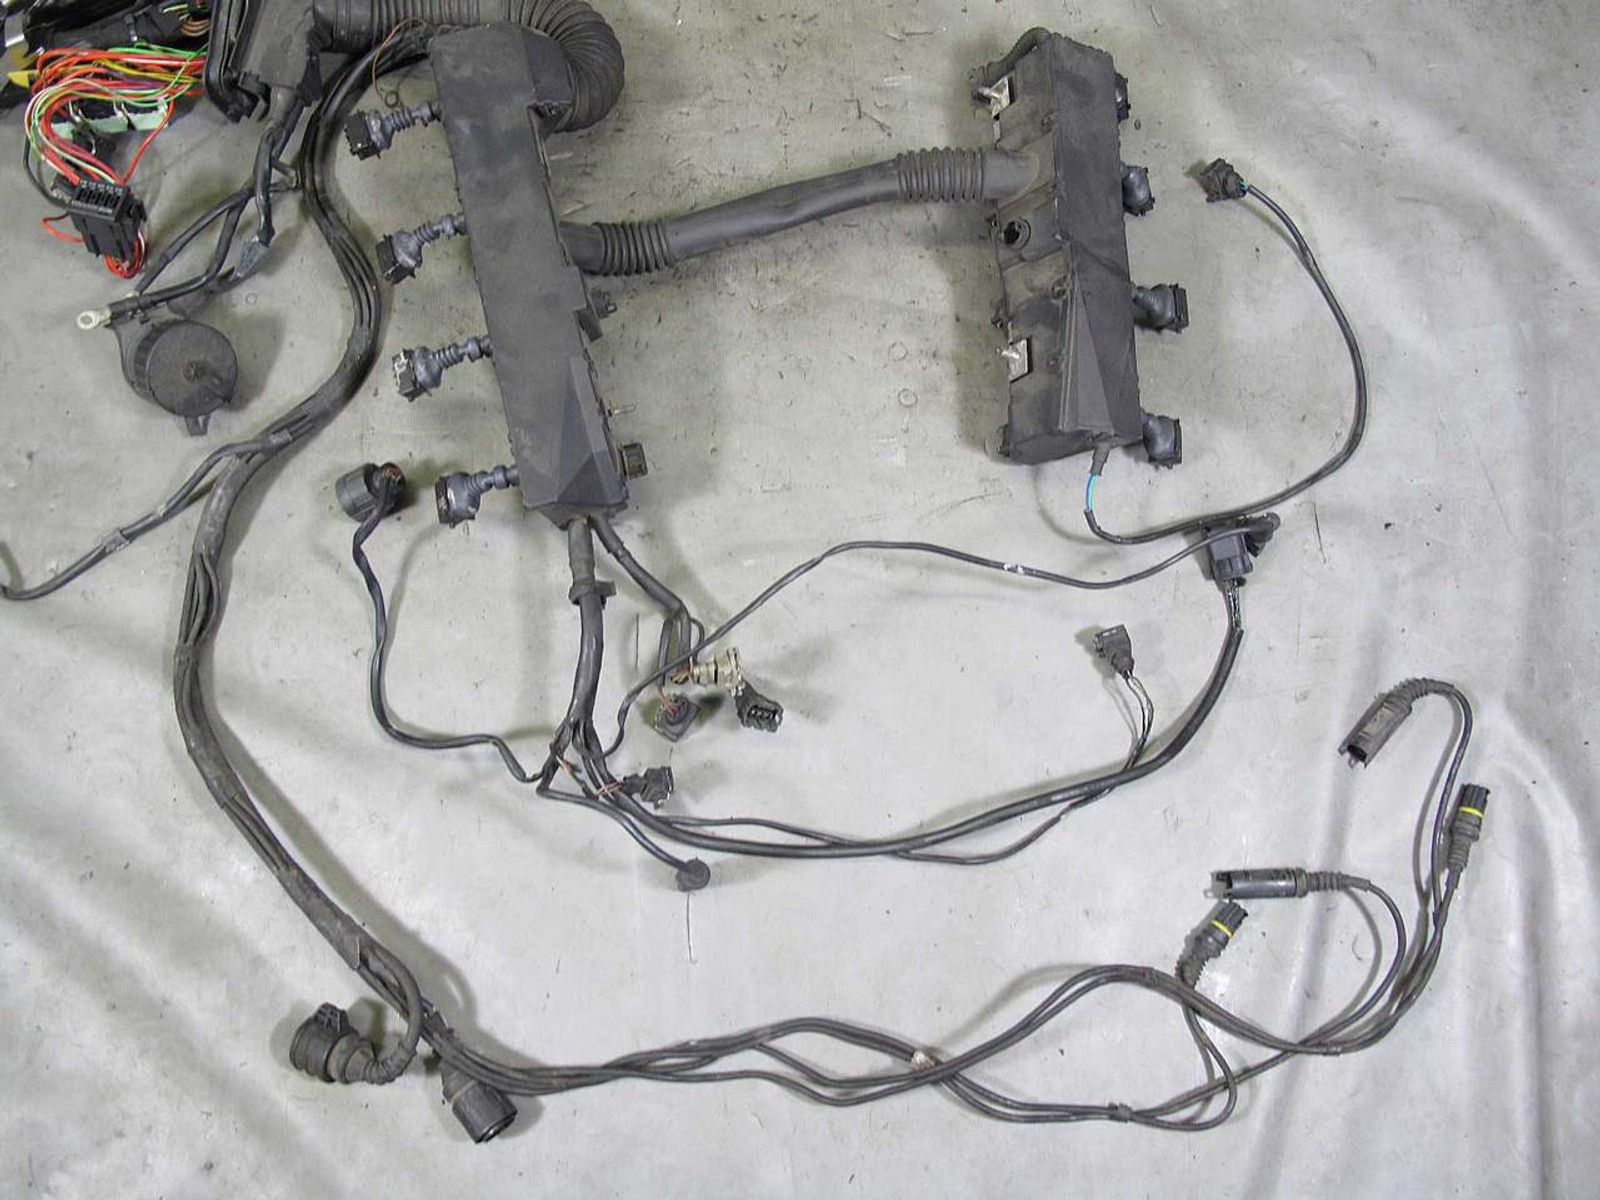 hight resolution of bmw 740il engine wiring harness wiring diagram third level bmw 740il engine swap 1996 1997 bmw